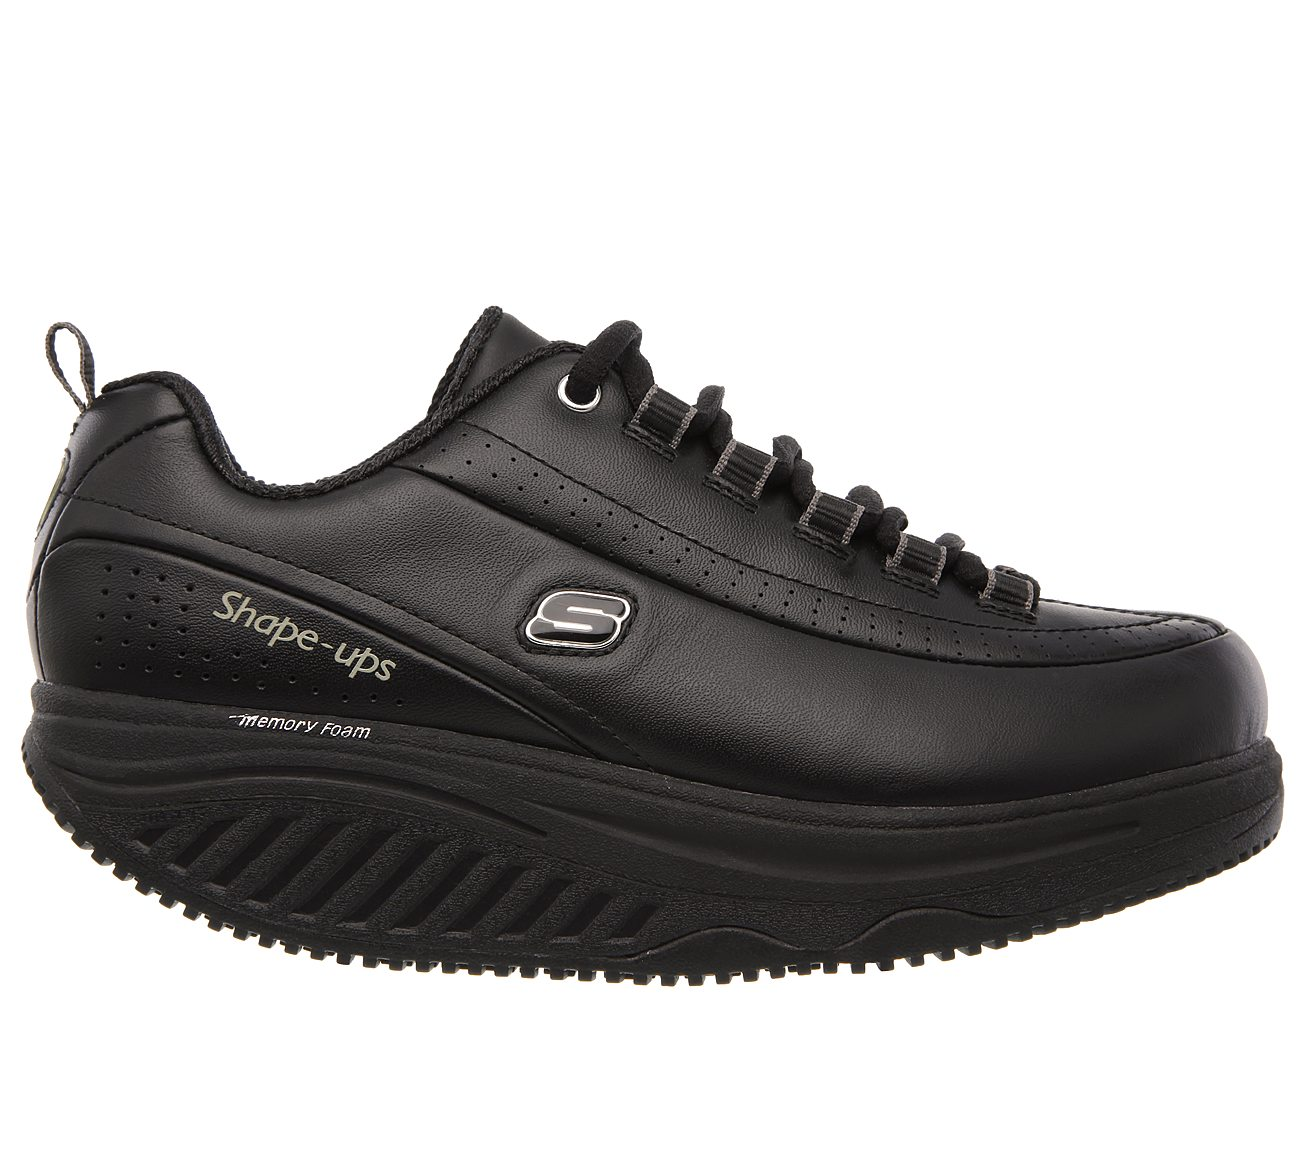 Elon SR SKECHERS Shape-ups Shoes